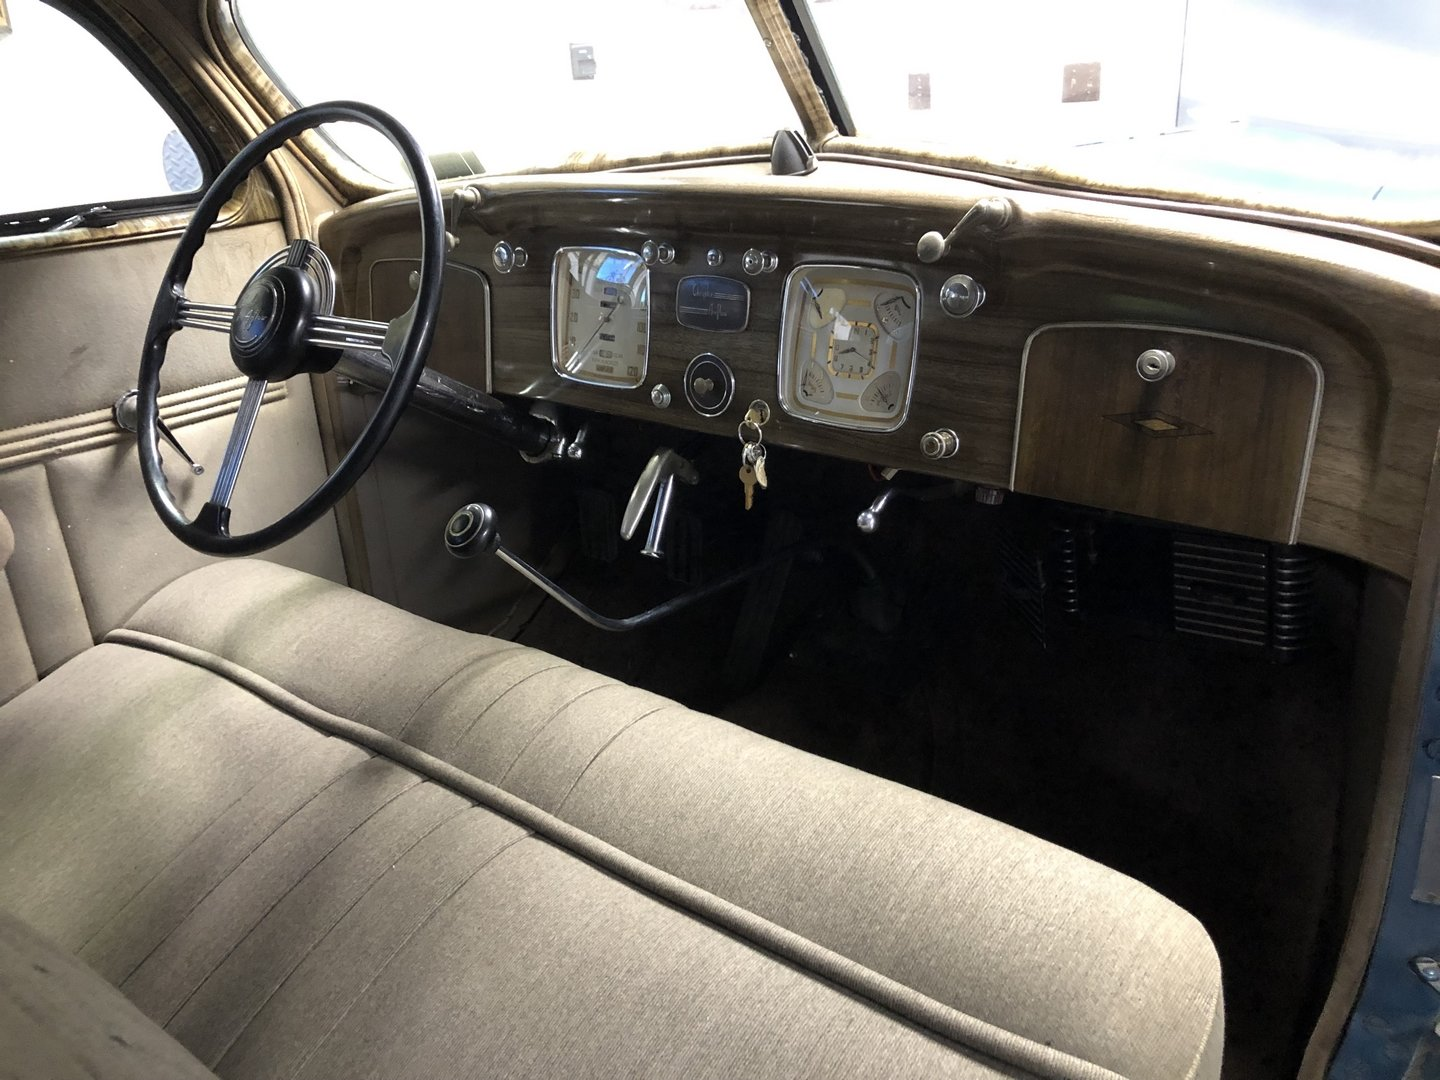 1937 CHRYSLER AIRFLOW COUPE For Sale (picture 4 of 6)